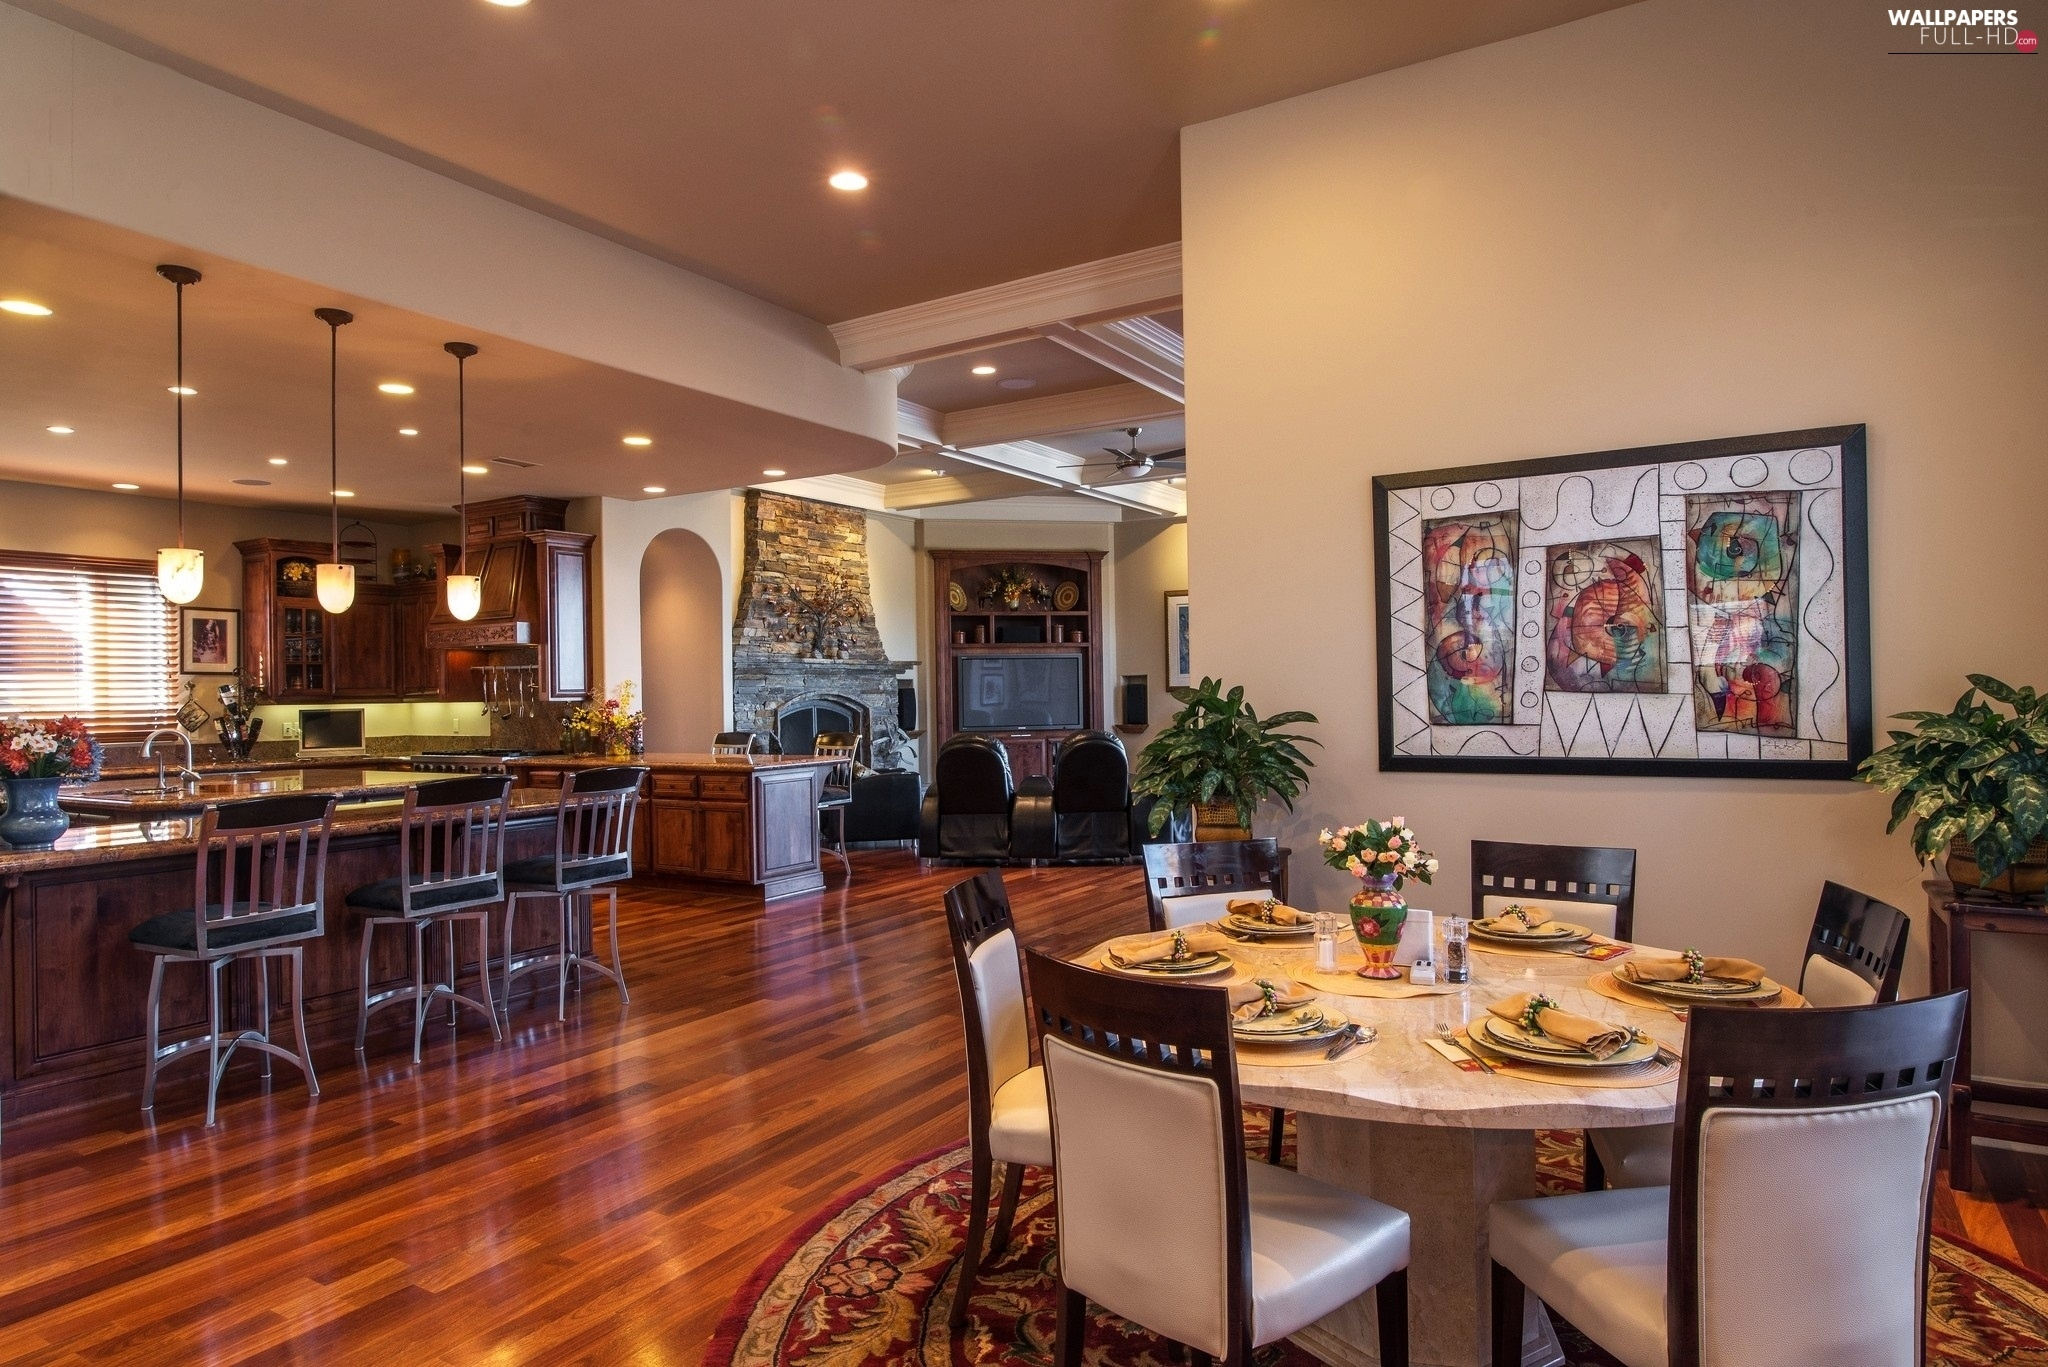 Dining room saloon house kitchen interior full hd for Kitchen dining room wallpaper